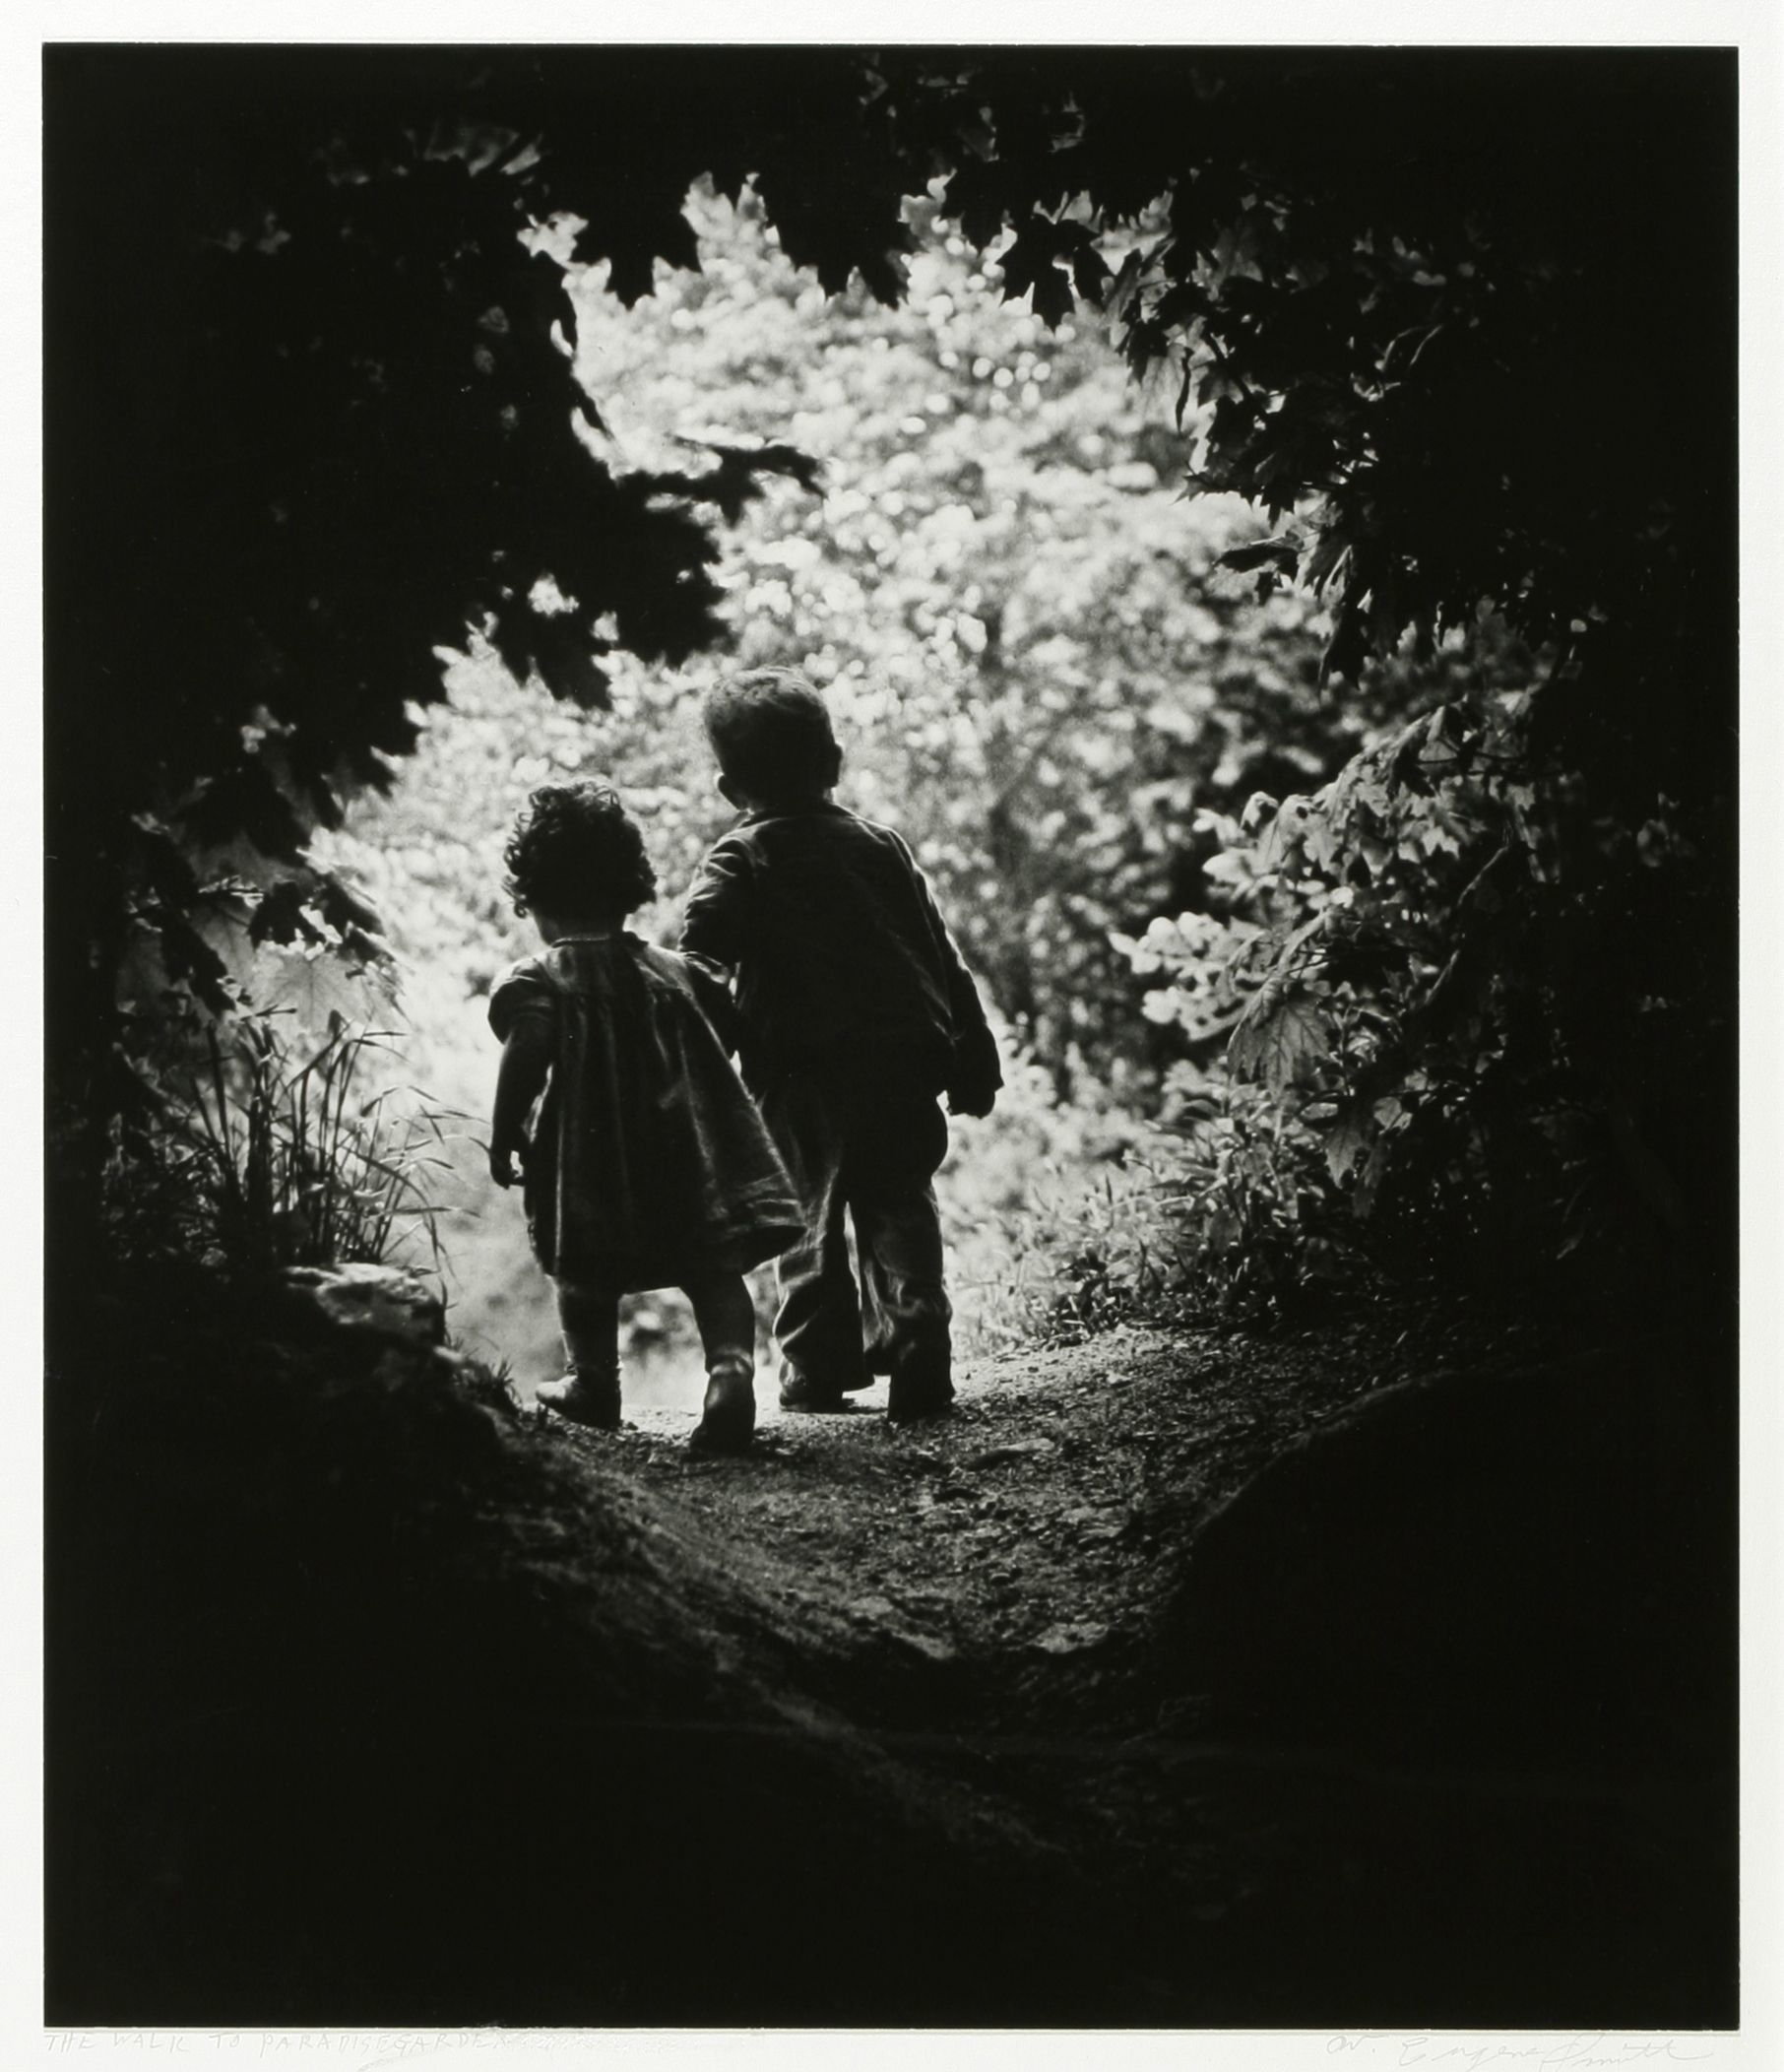 W.ユージン・スミス(アメリカ、1918-1978) 《楽園への歩み》1946年 (C)2017 The Heirs of W. Eugene Smith/PPS